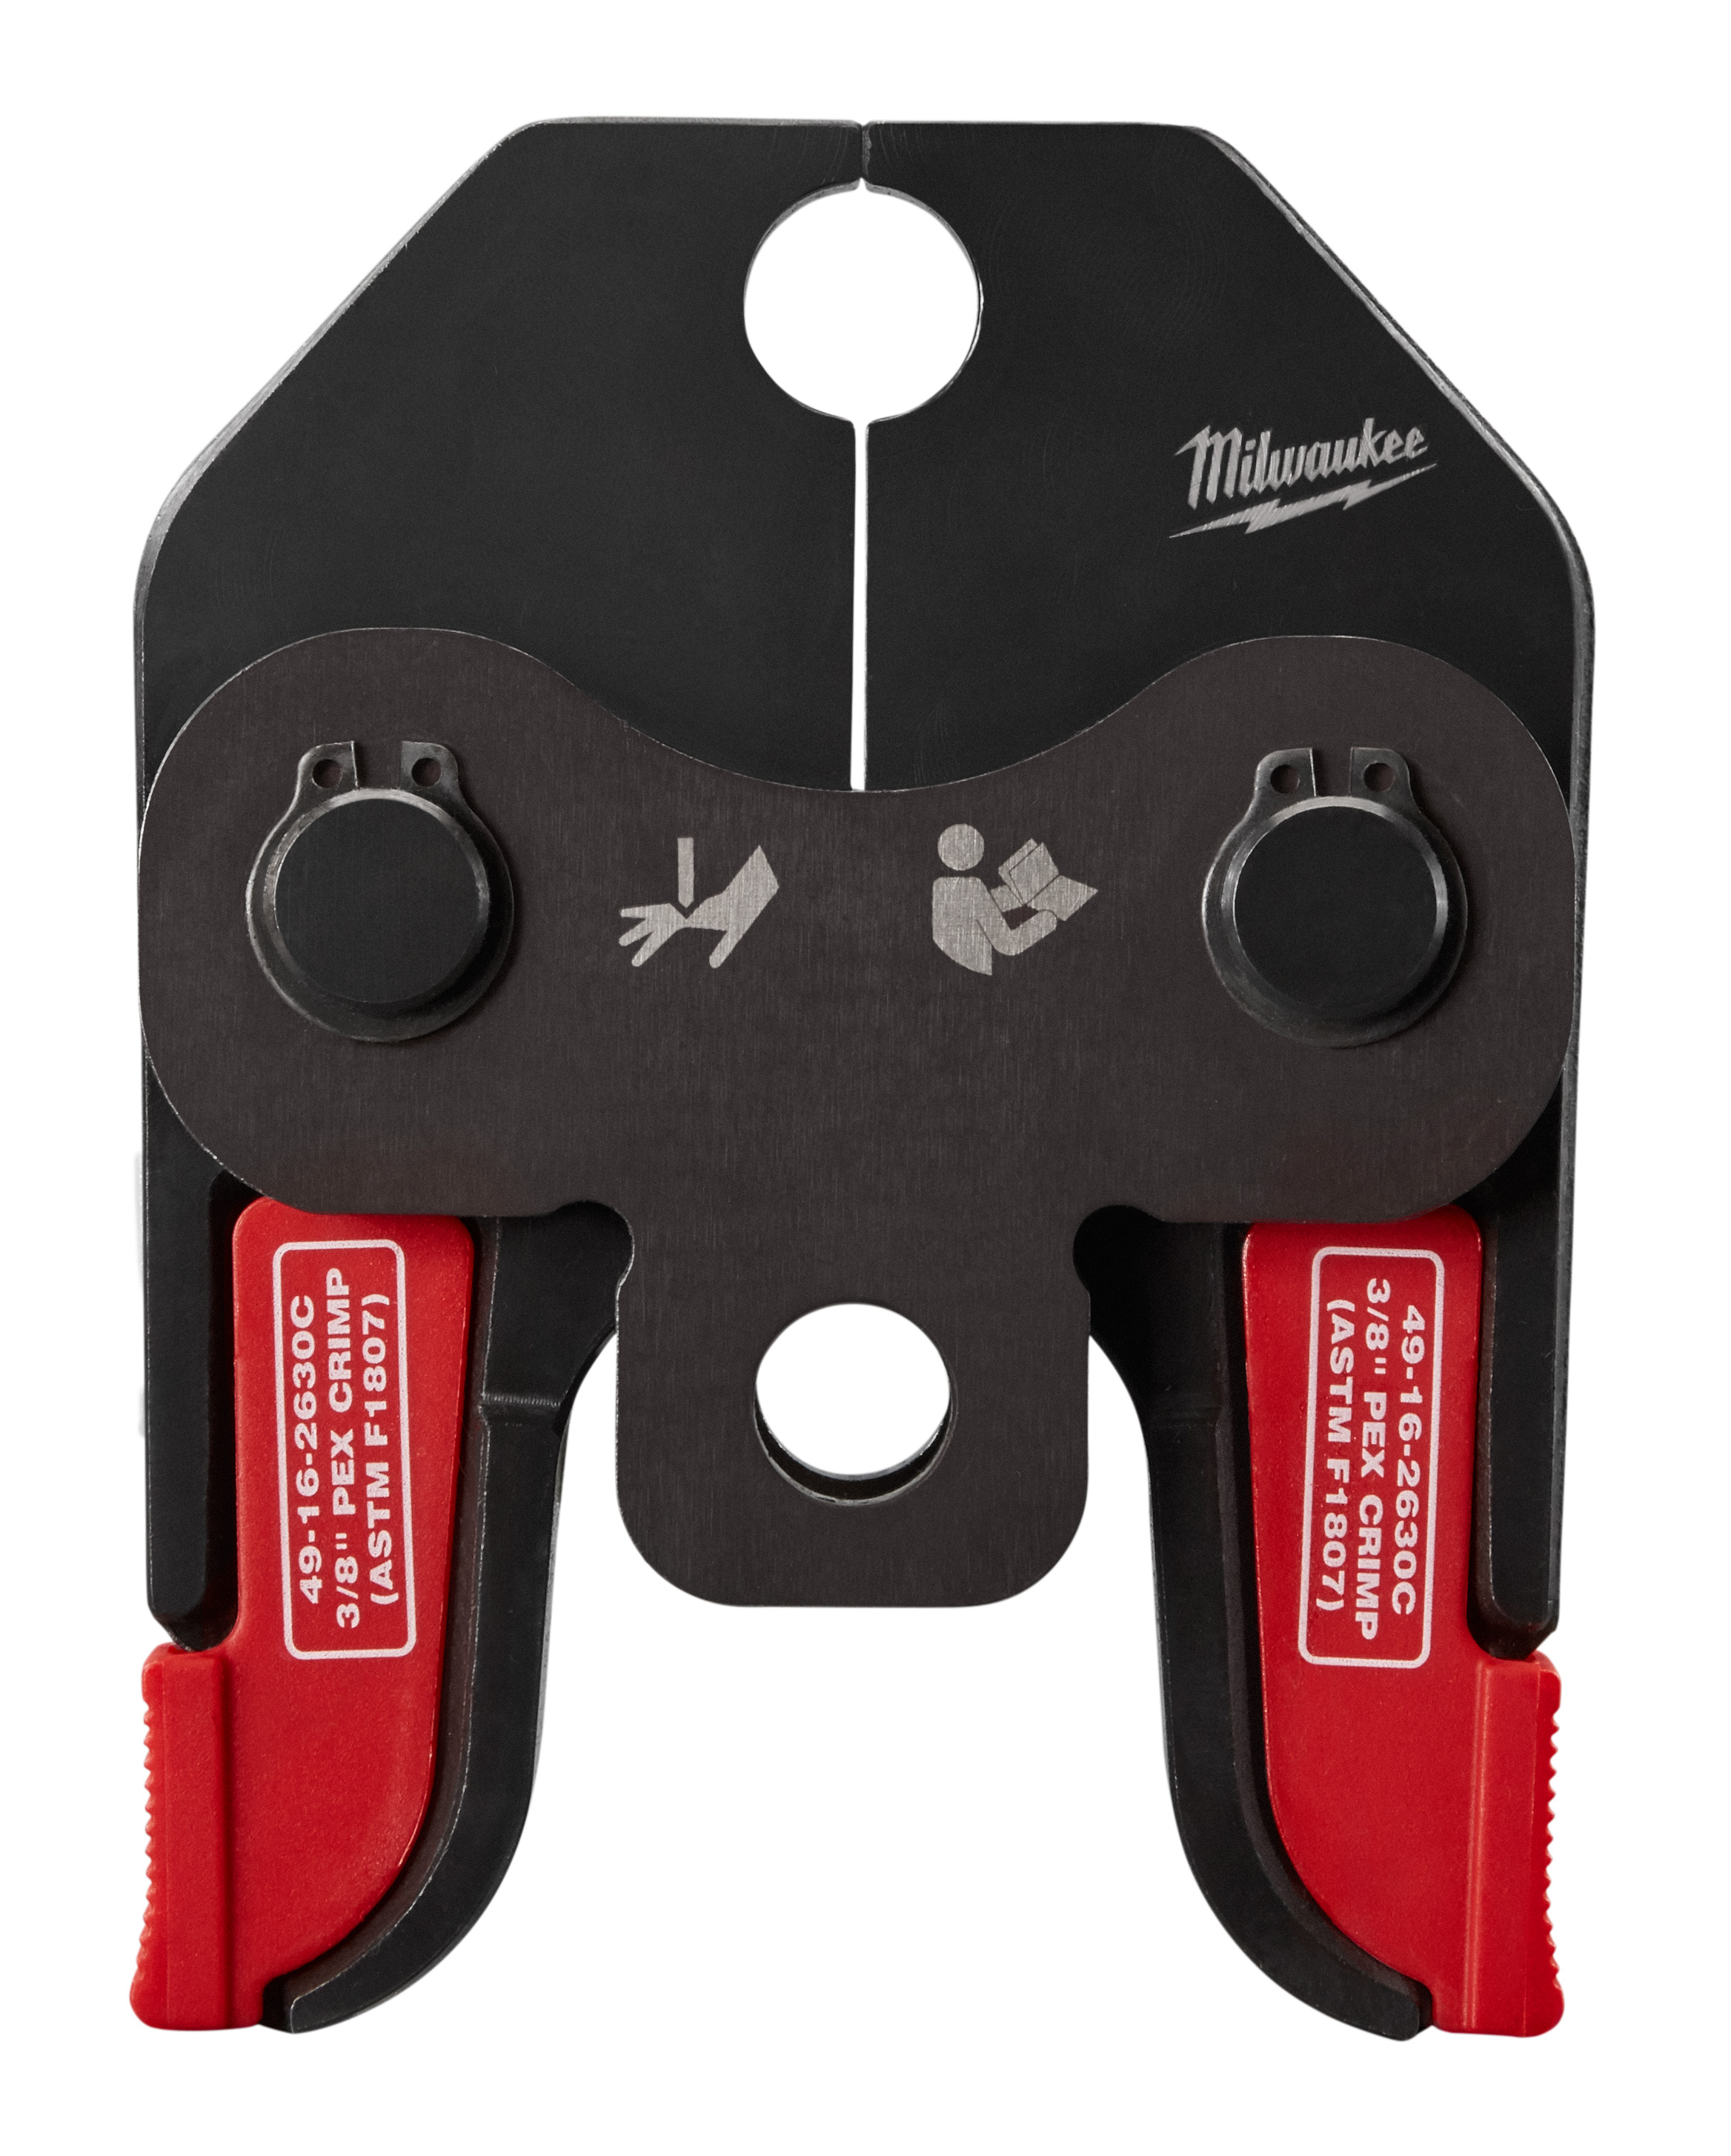 Milwaukee® 49-16-2630C PEX Crimp Jaw, For Use With M18™ Short Throw Press Tool, F1807, F2159 Fitting System, PEX Pipe/Tubing Material, 3/8 in Jaw Capacity, Steel